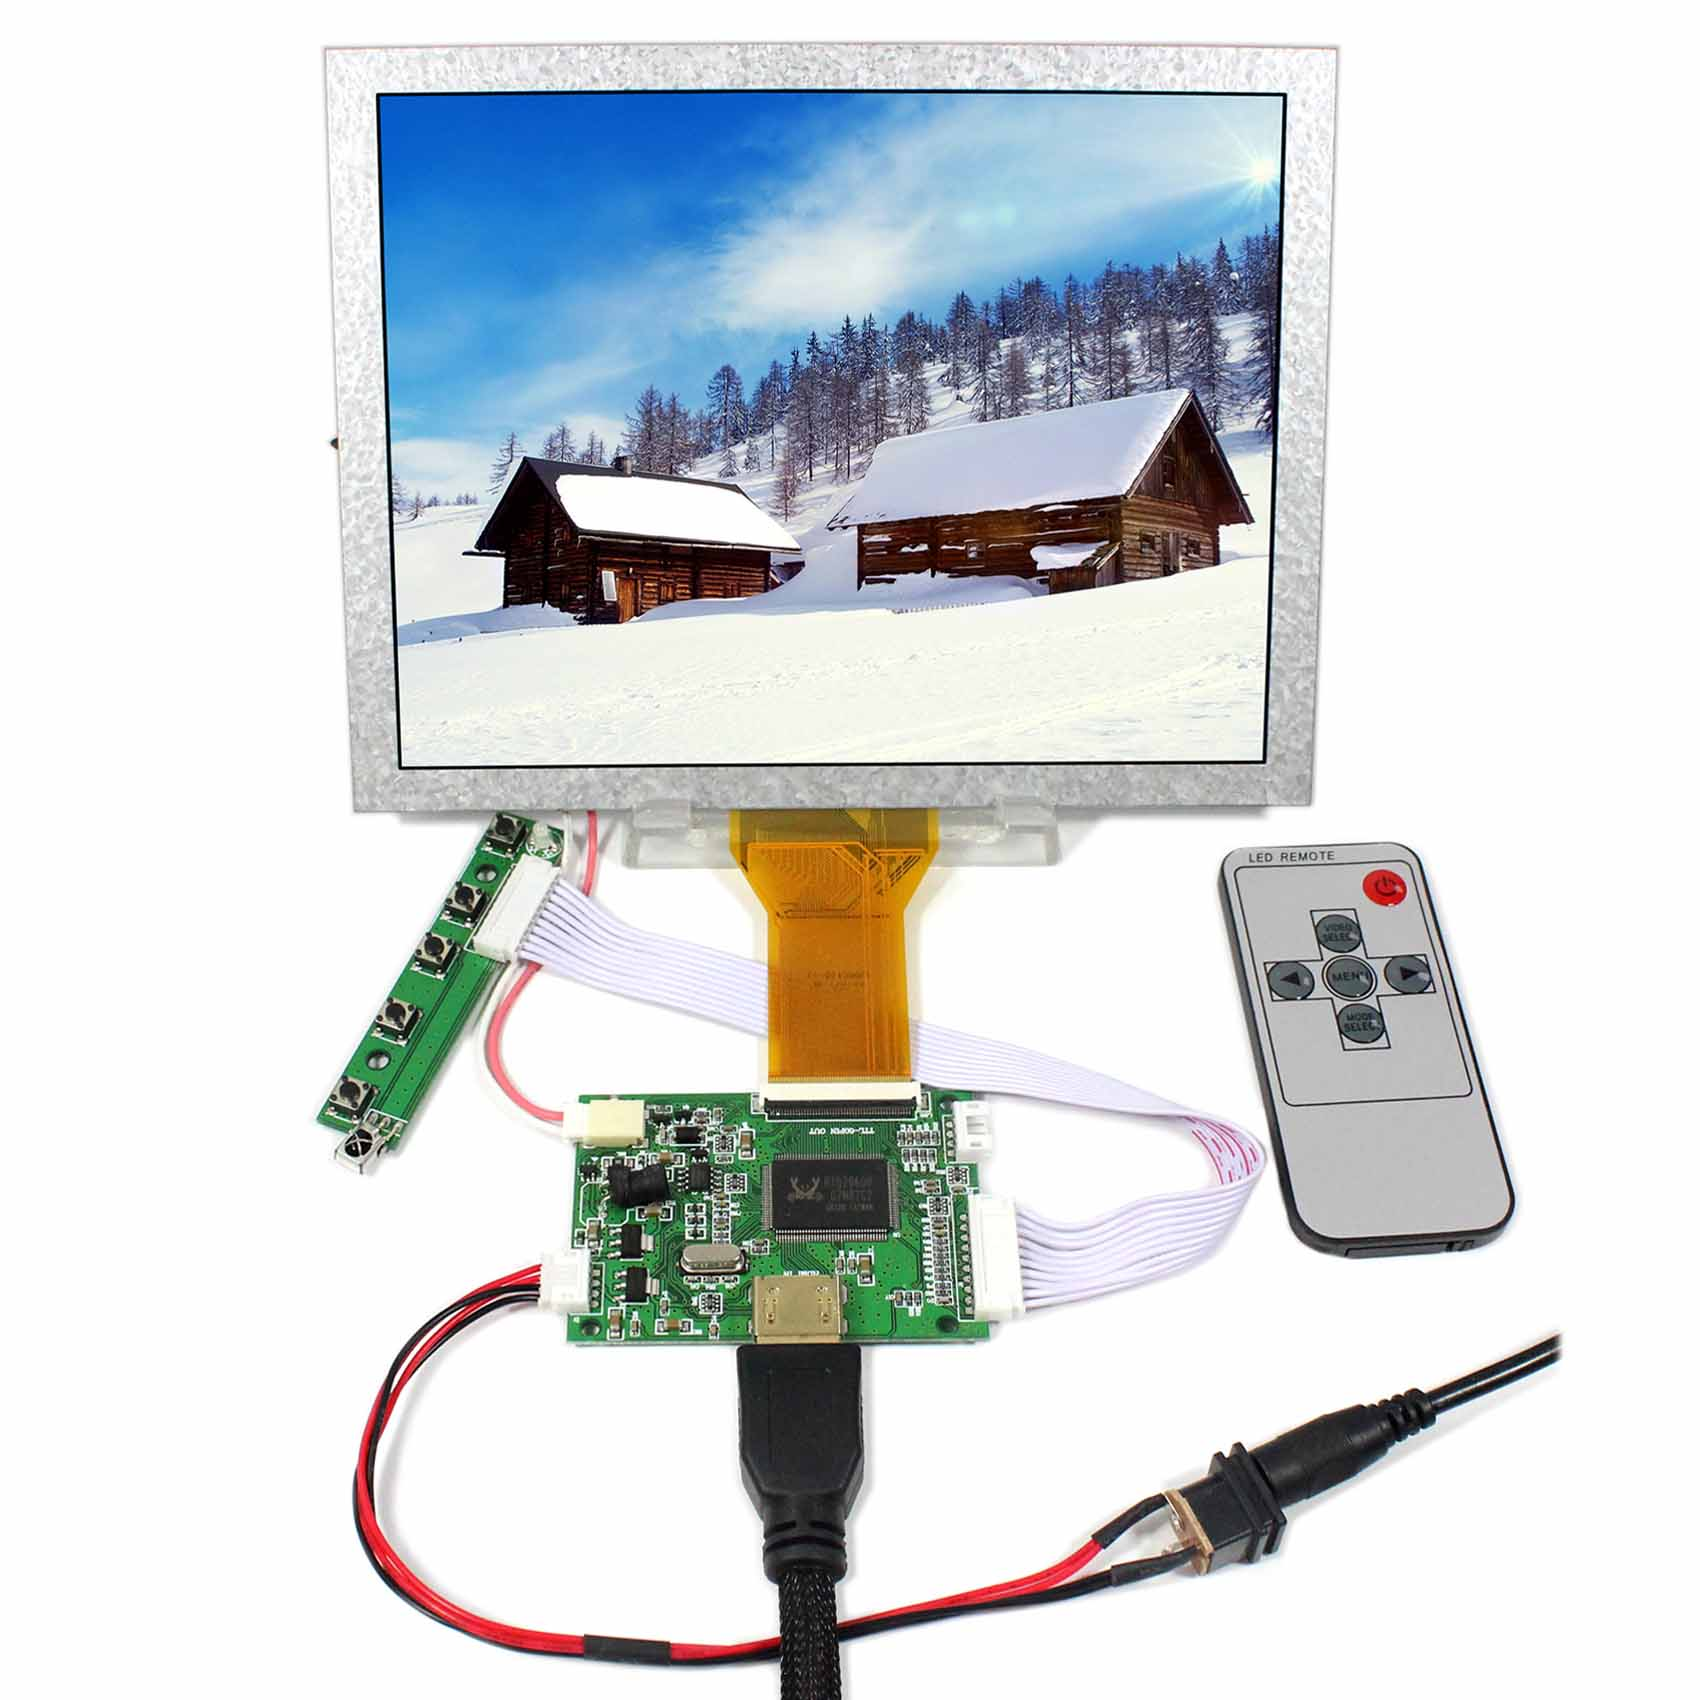 8inch 800x600 EJ080NA-05A LCD For Raspberry Pi+HDMI LCD Controller Board VS-TY50-V2 hdmi vga av audio usb fpv controller board 8inch 800x600 ej080na 05a lcd panel screen model lcd for raspberry pi